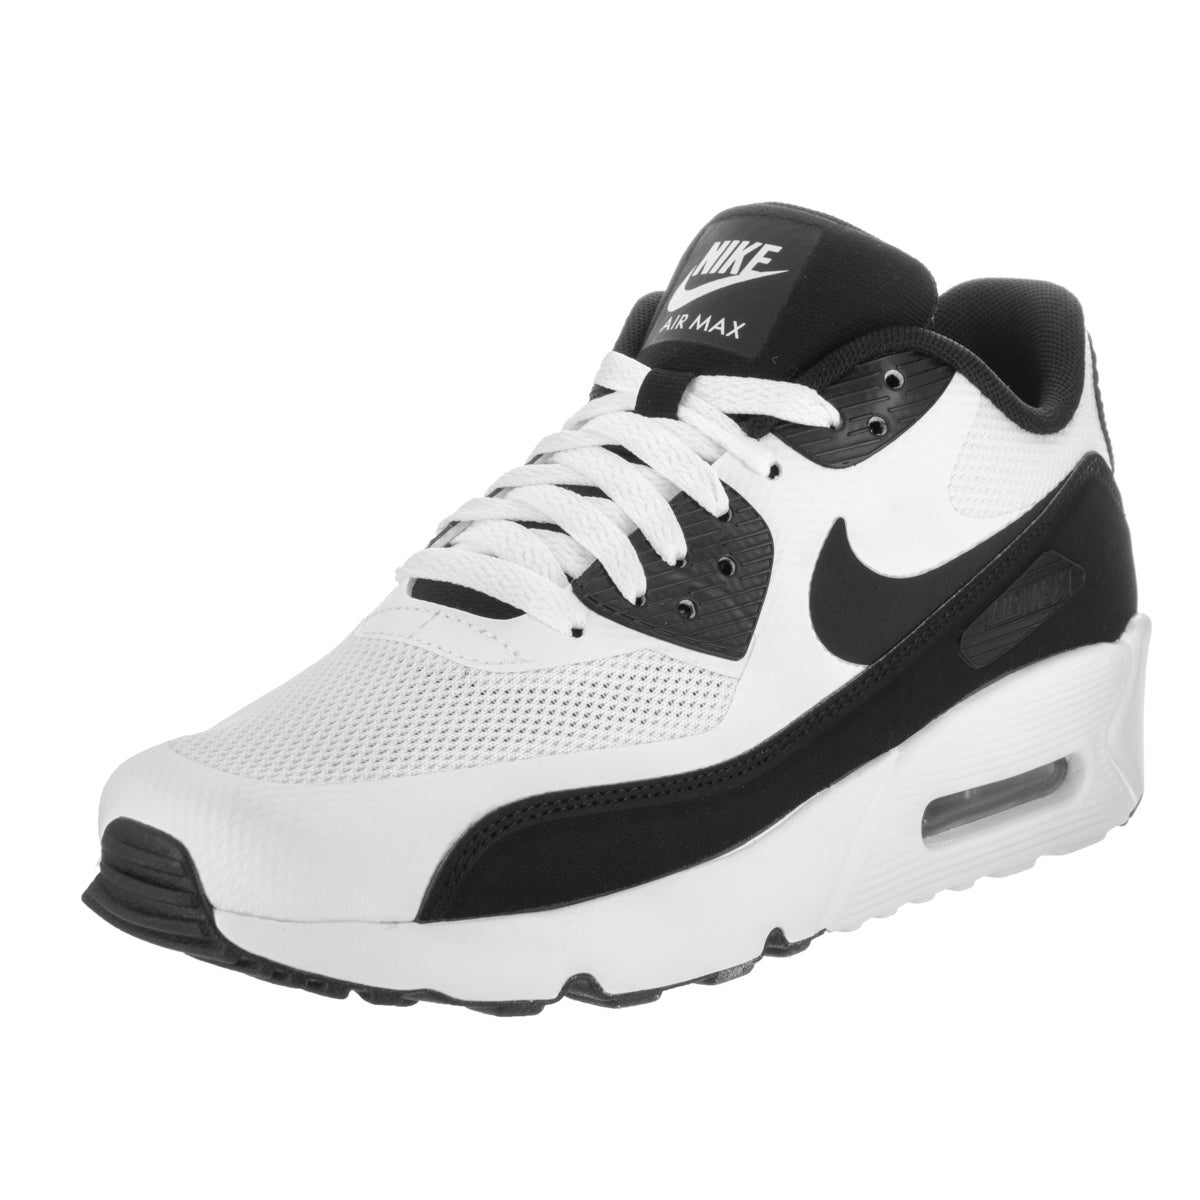 ec132e2c5424d Shop Nike Kids Air Max 90 Ultra 2.0 (GS) Running Shoe - Free Shipping Today  - Overstock - 14092751